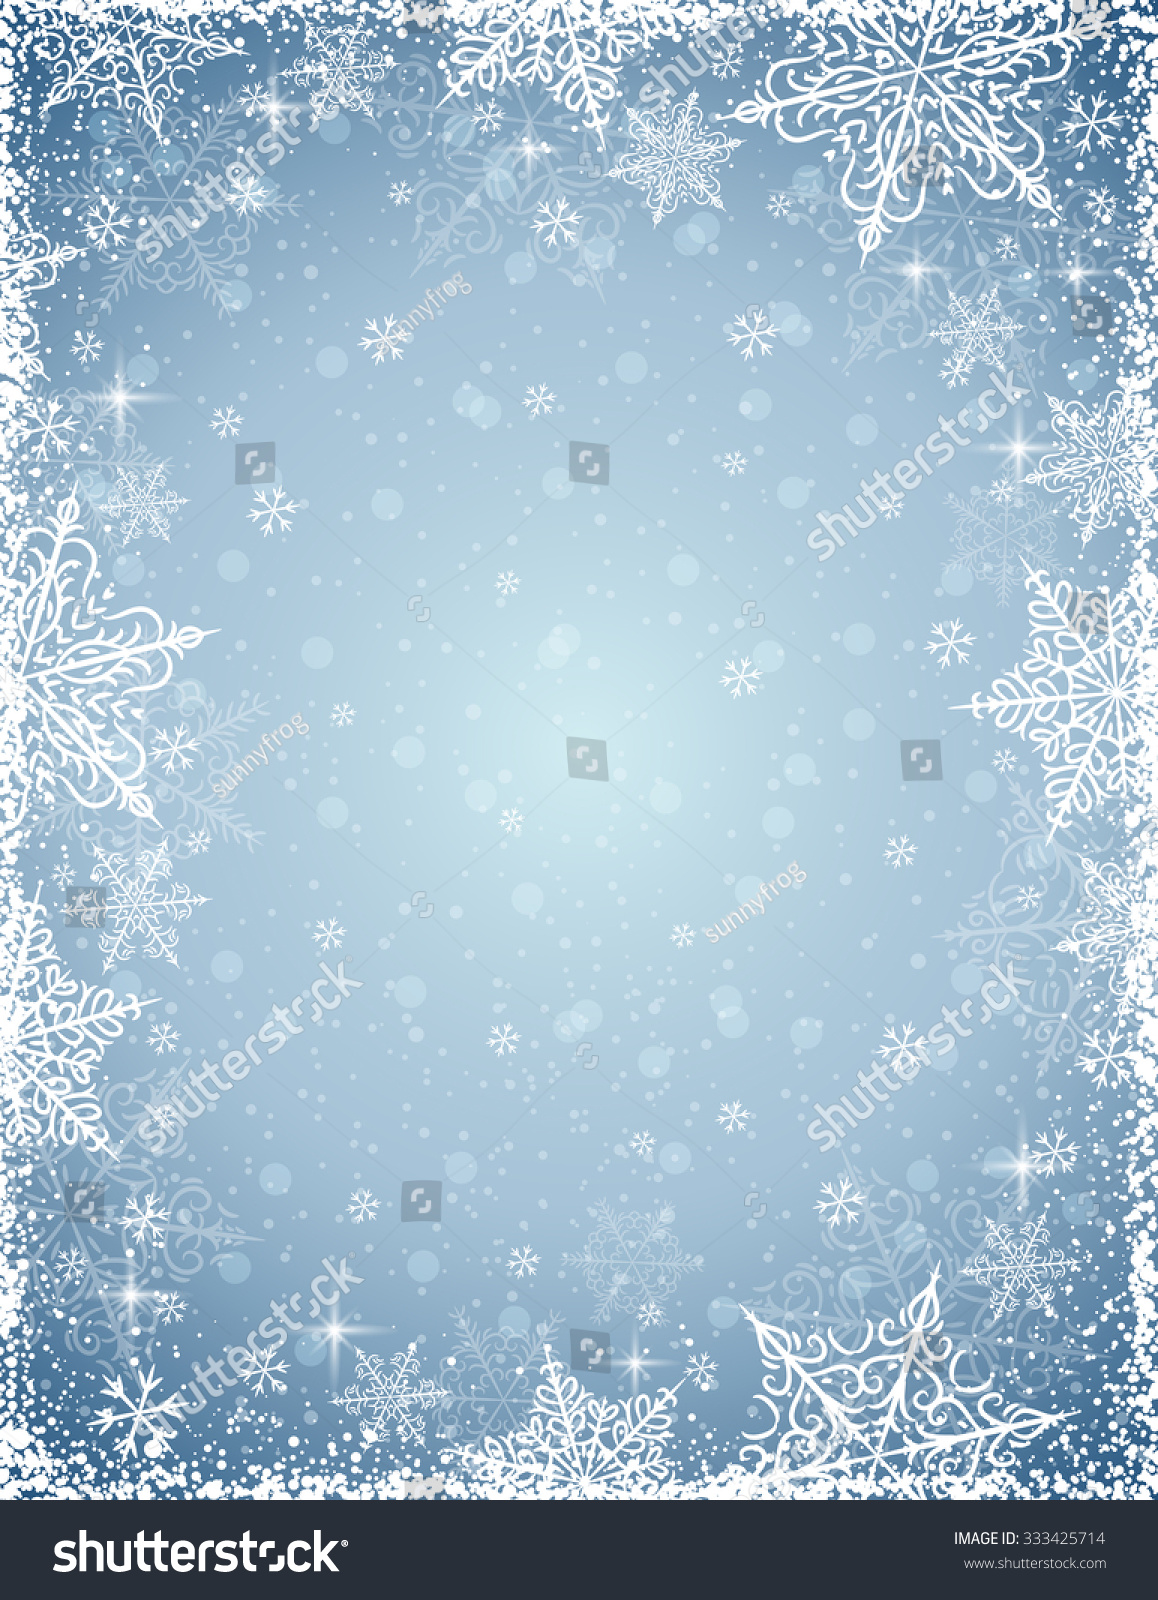 Gray snowflake vector